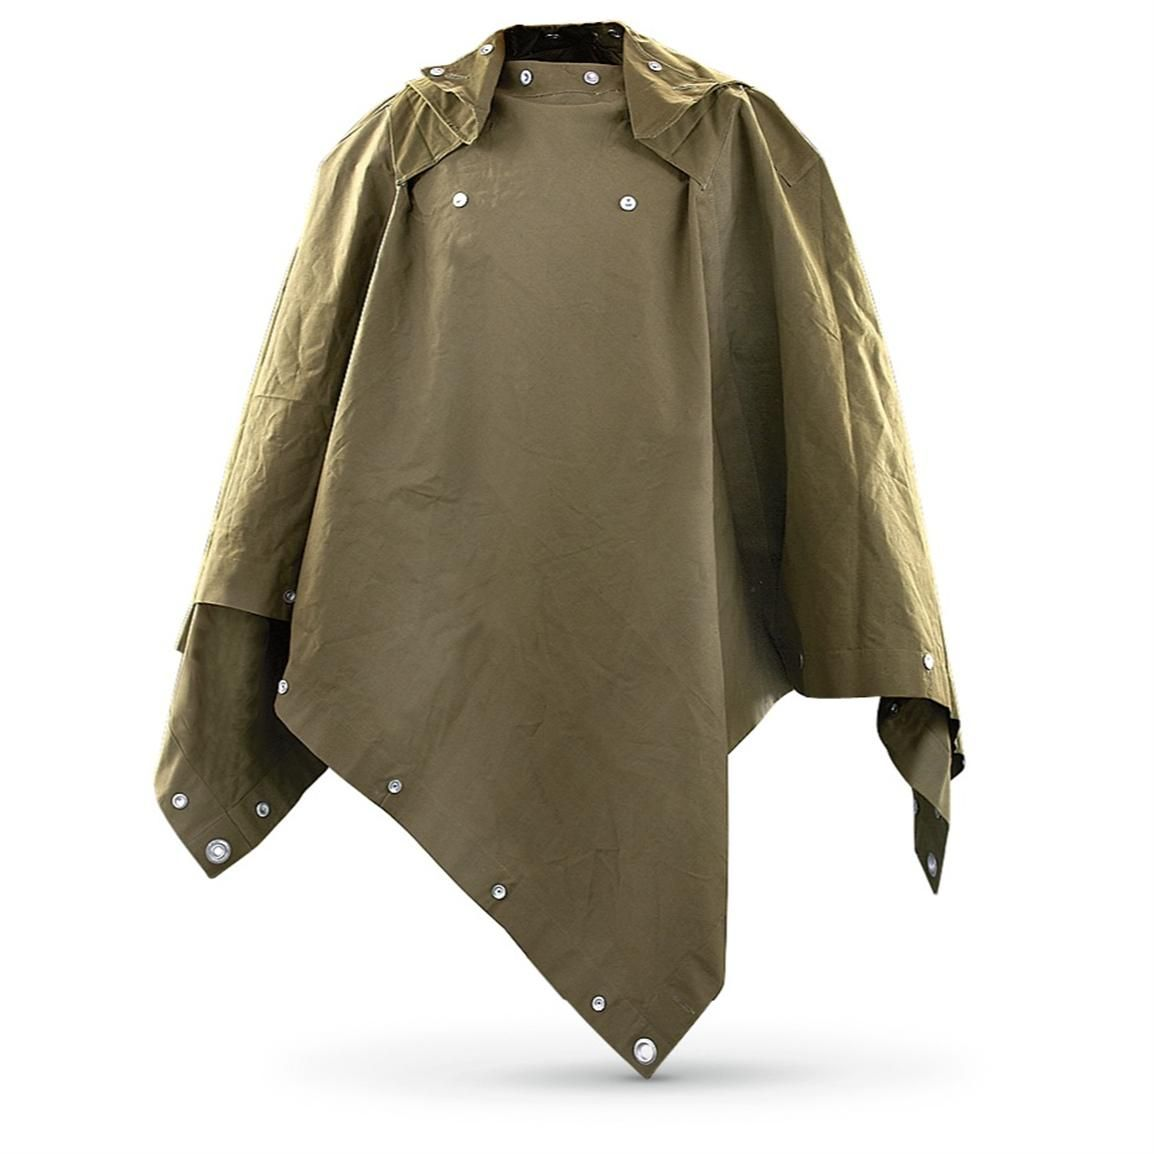 2 Used Dutch Military Shelter   Ponchos 18adf274d